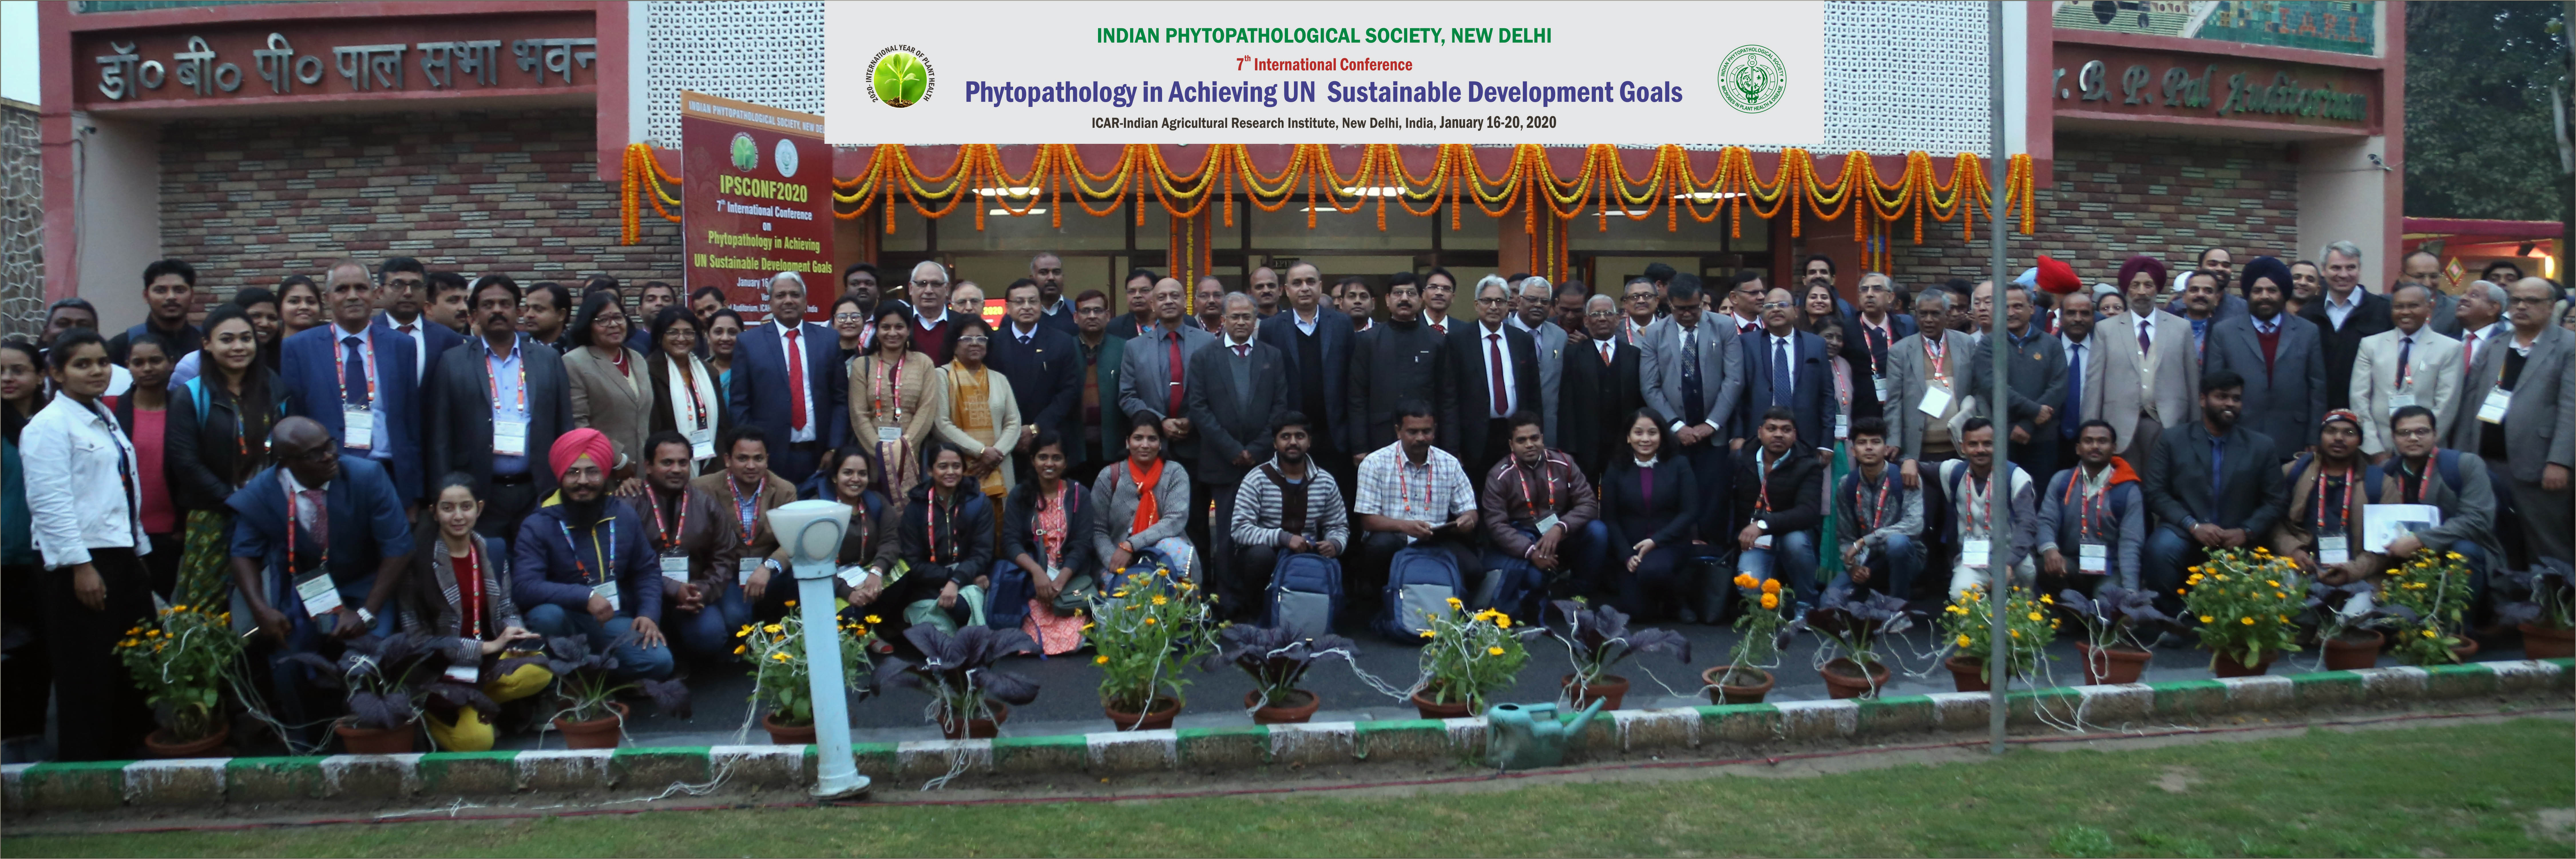 Welcome to the Society - Indian phytopathological Society